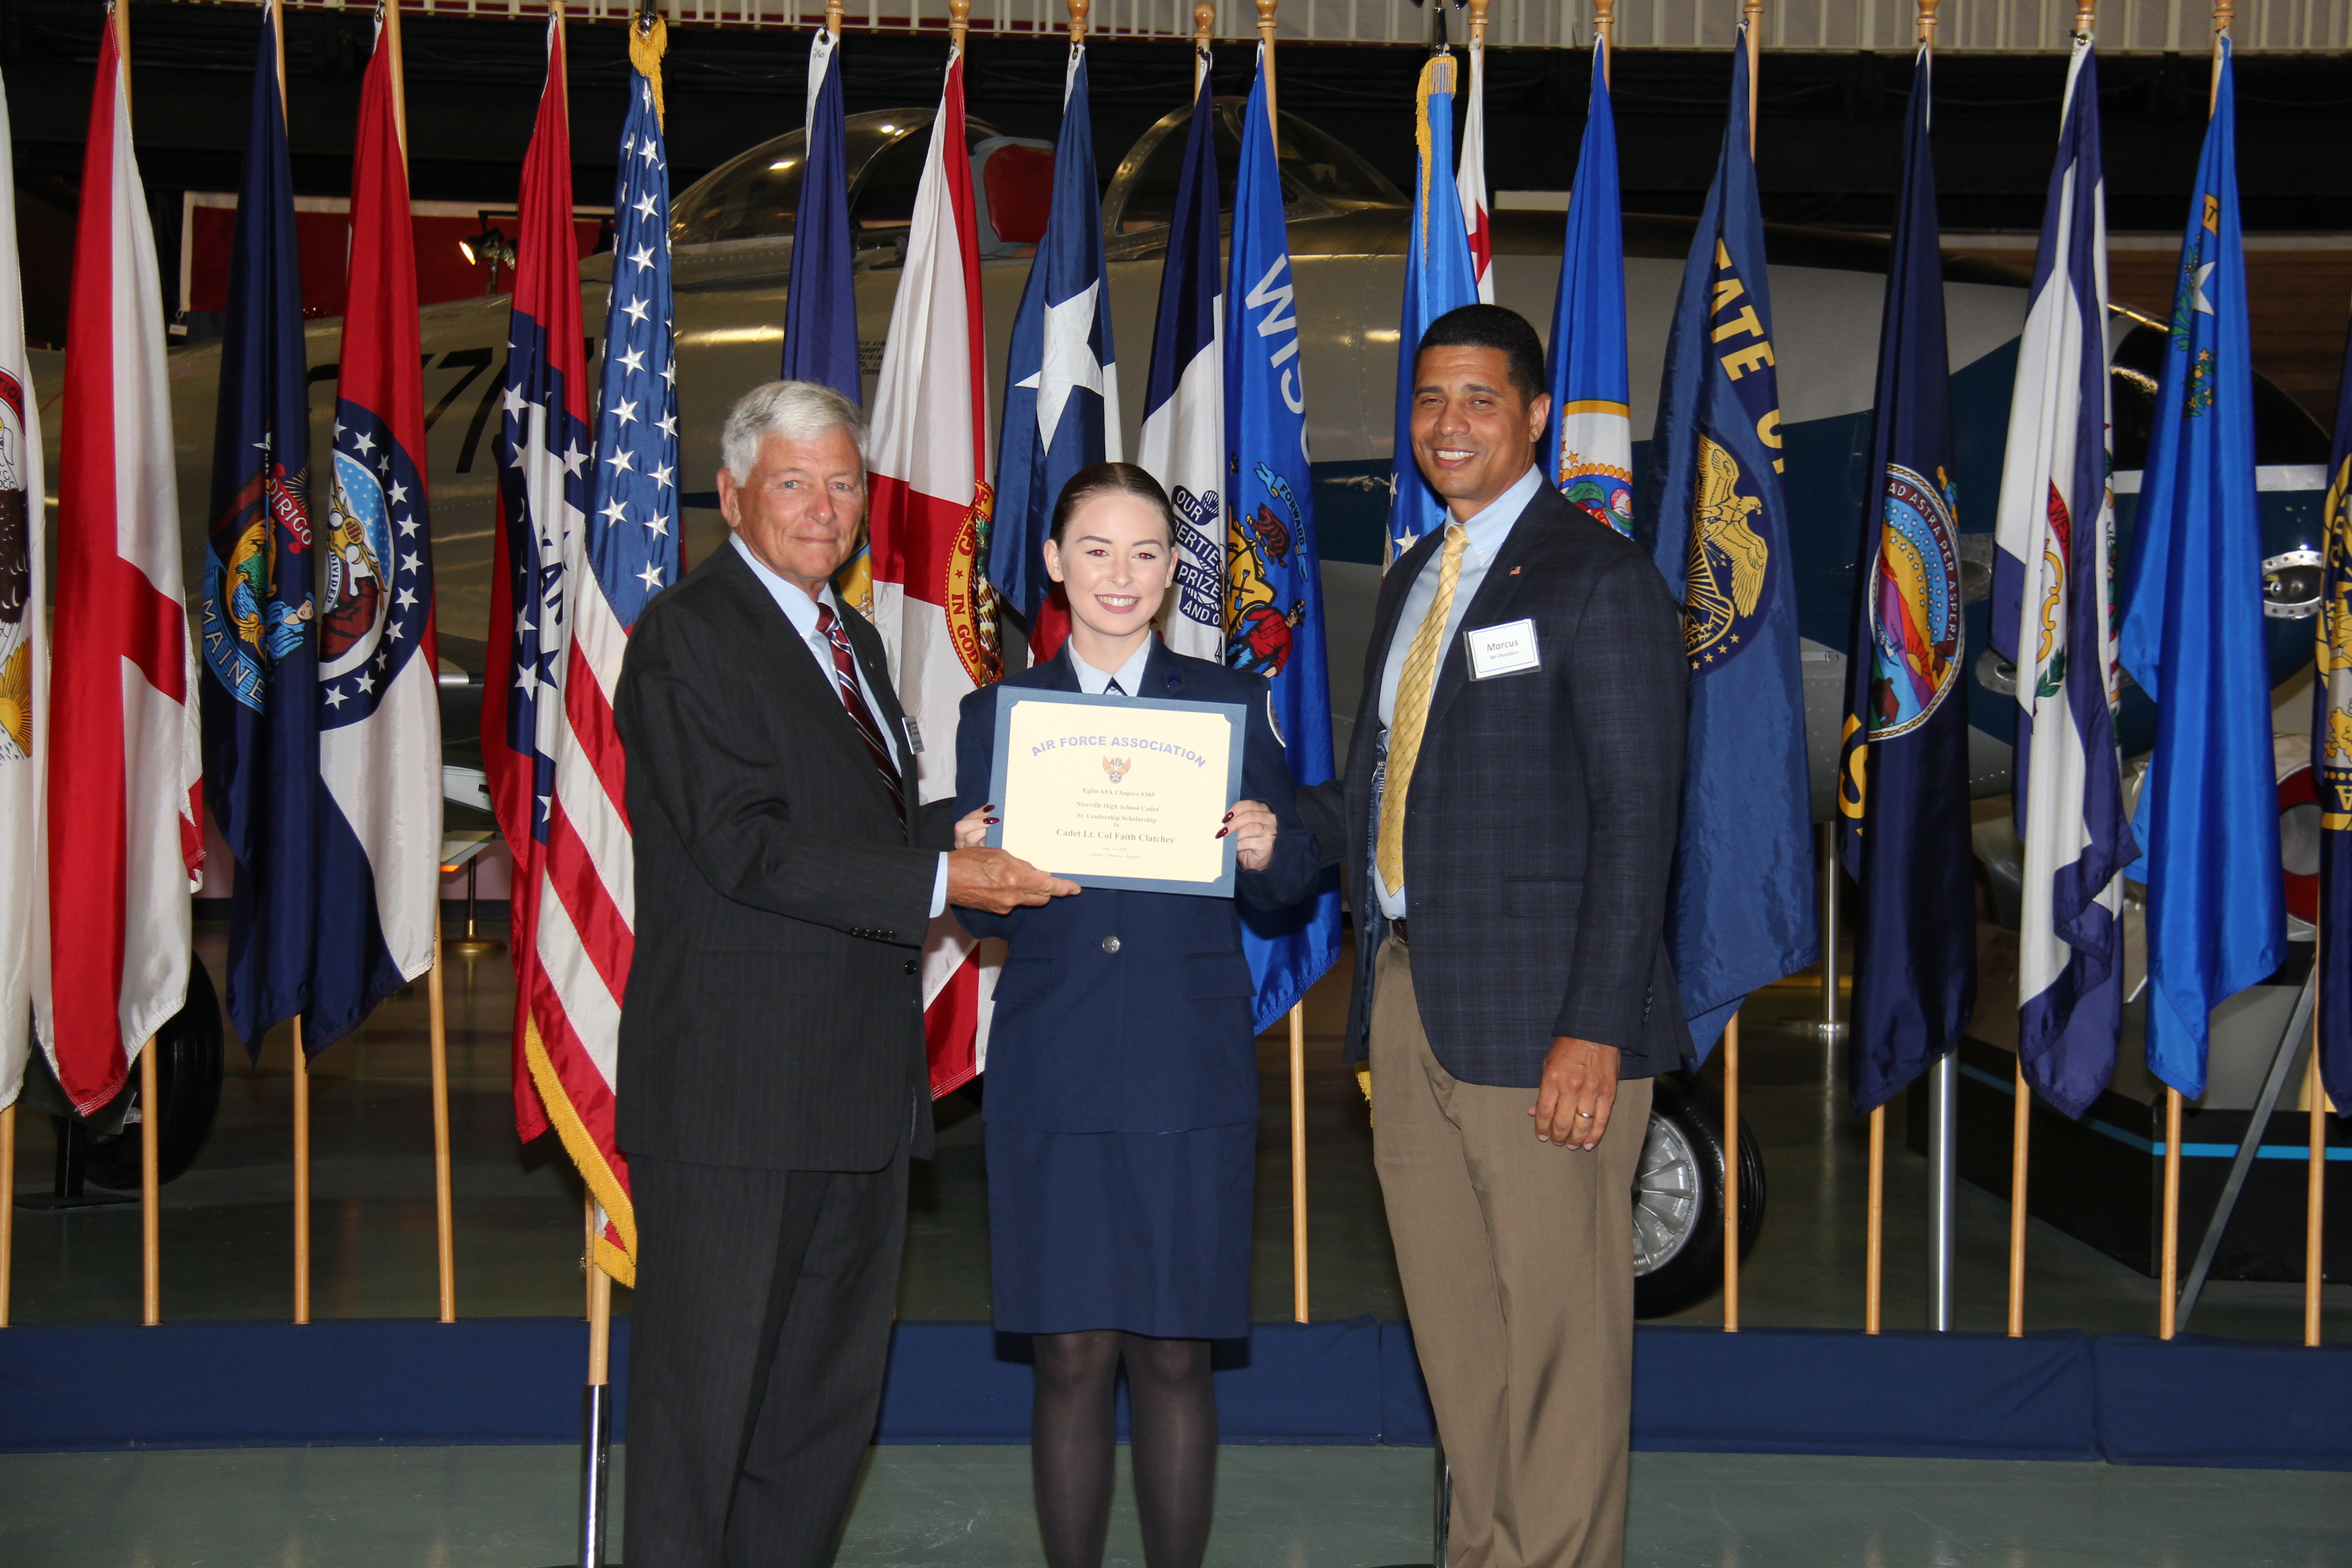 Cadet Lt. Colonel Faith Clatchey, Niceville High School